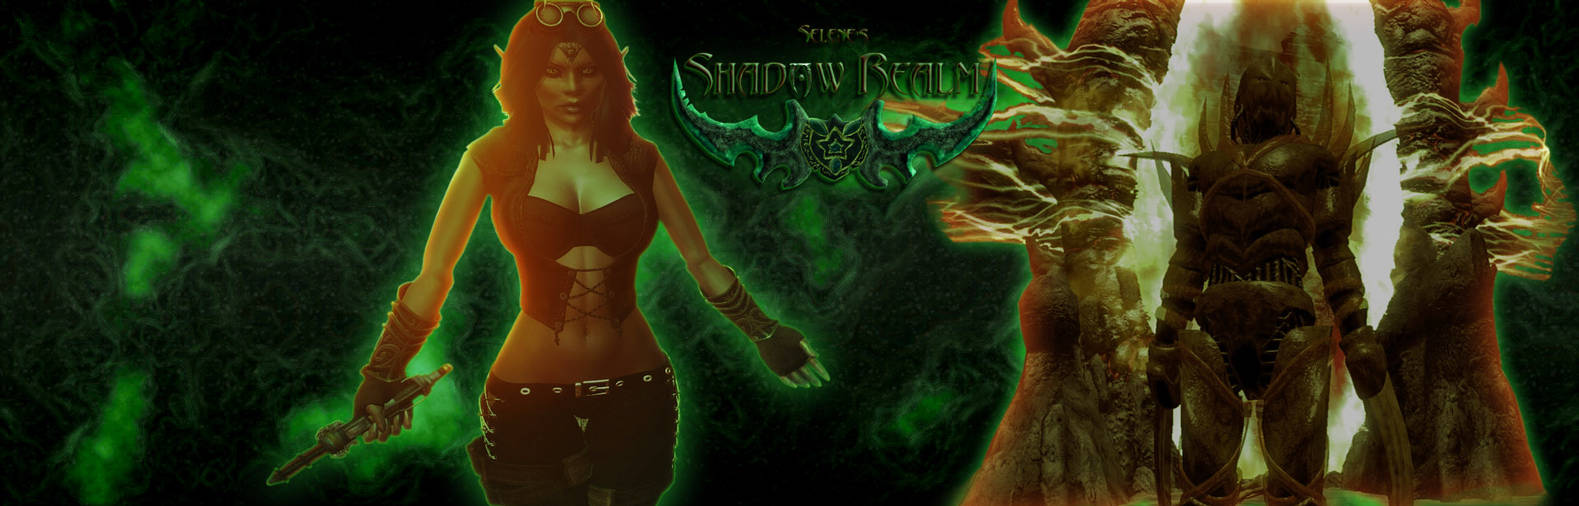 Selene's Shadow Realm - header image by VenusOfTheCrows